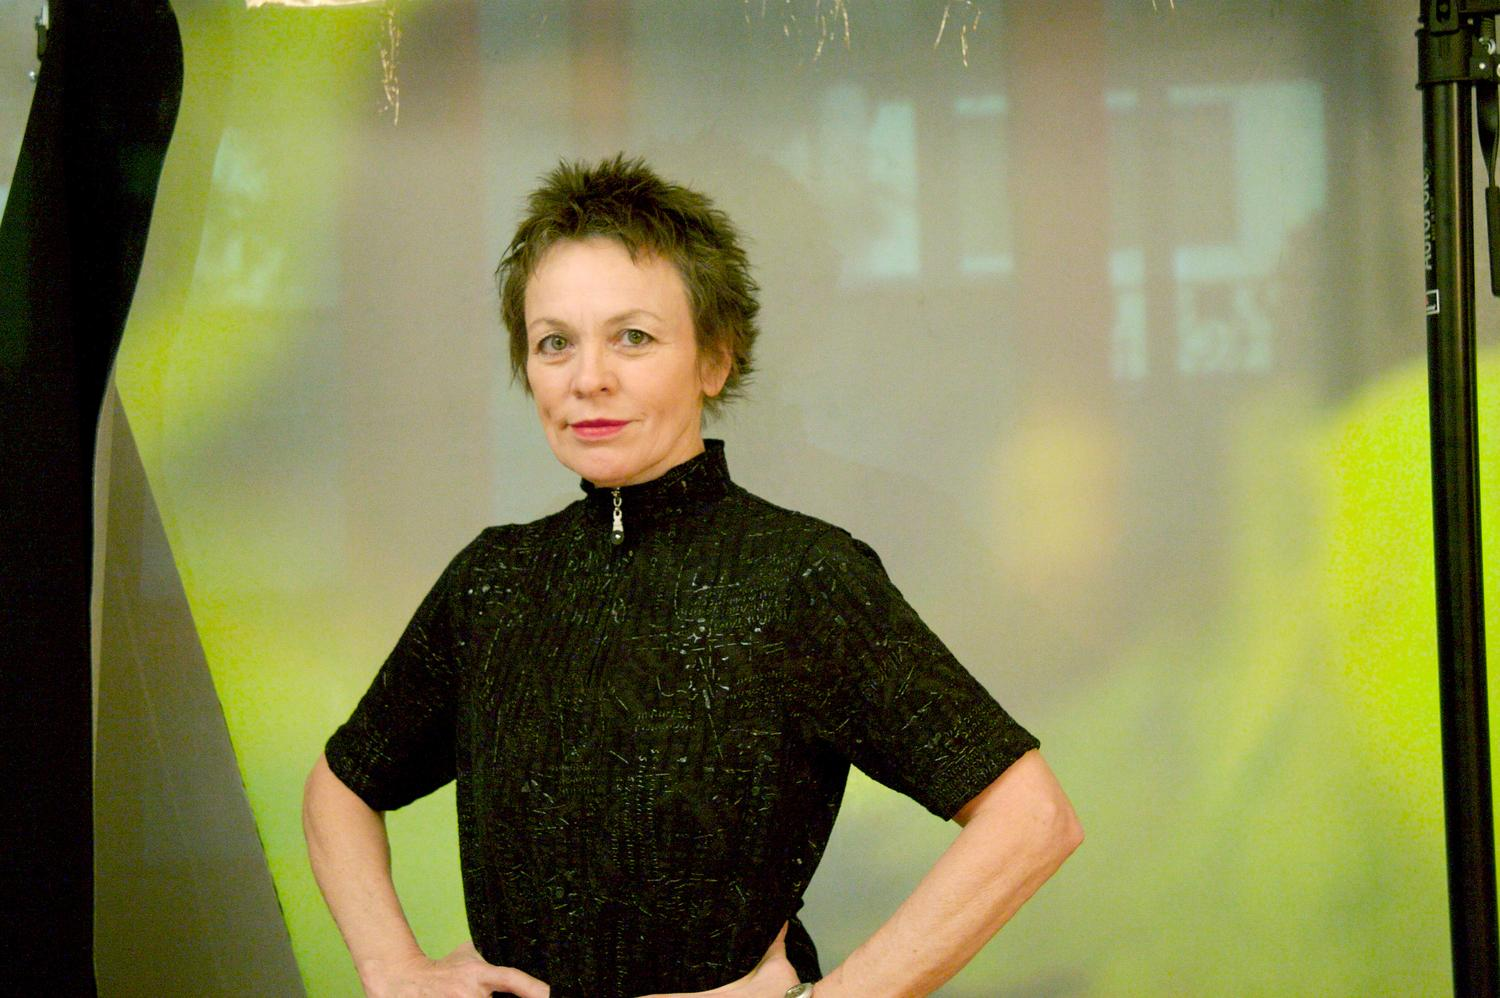 New Tech City's Tech, Music & the Brain with Laurie Anderson and Guests